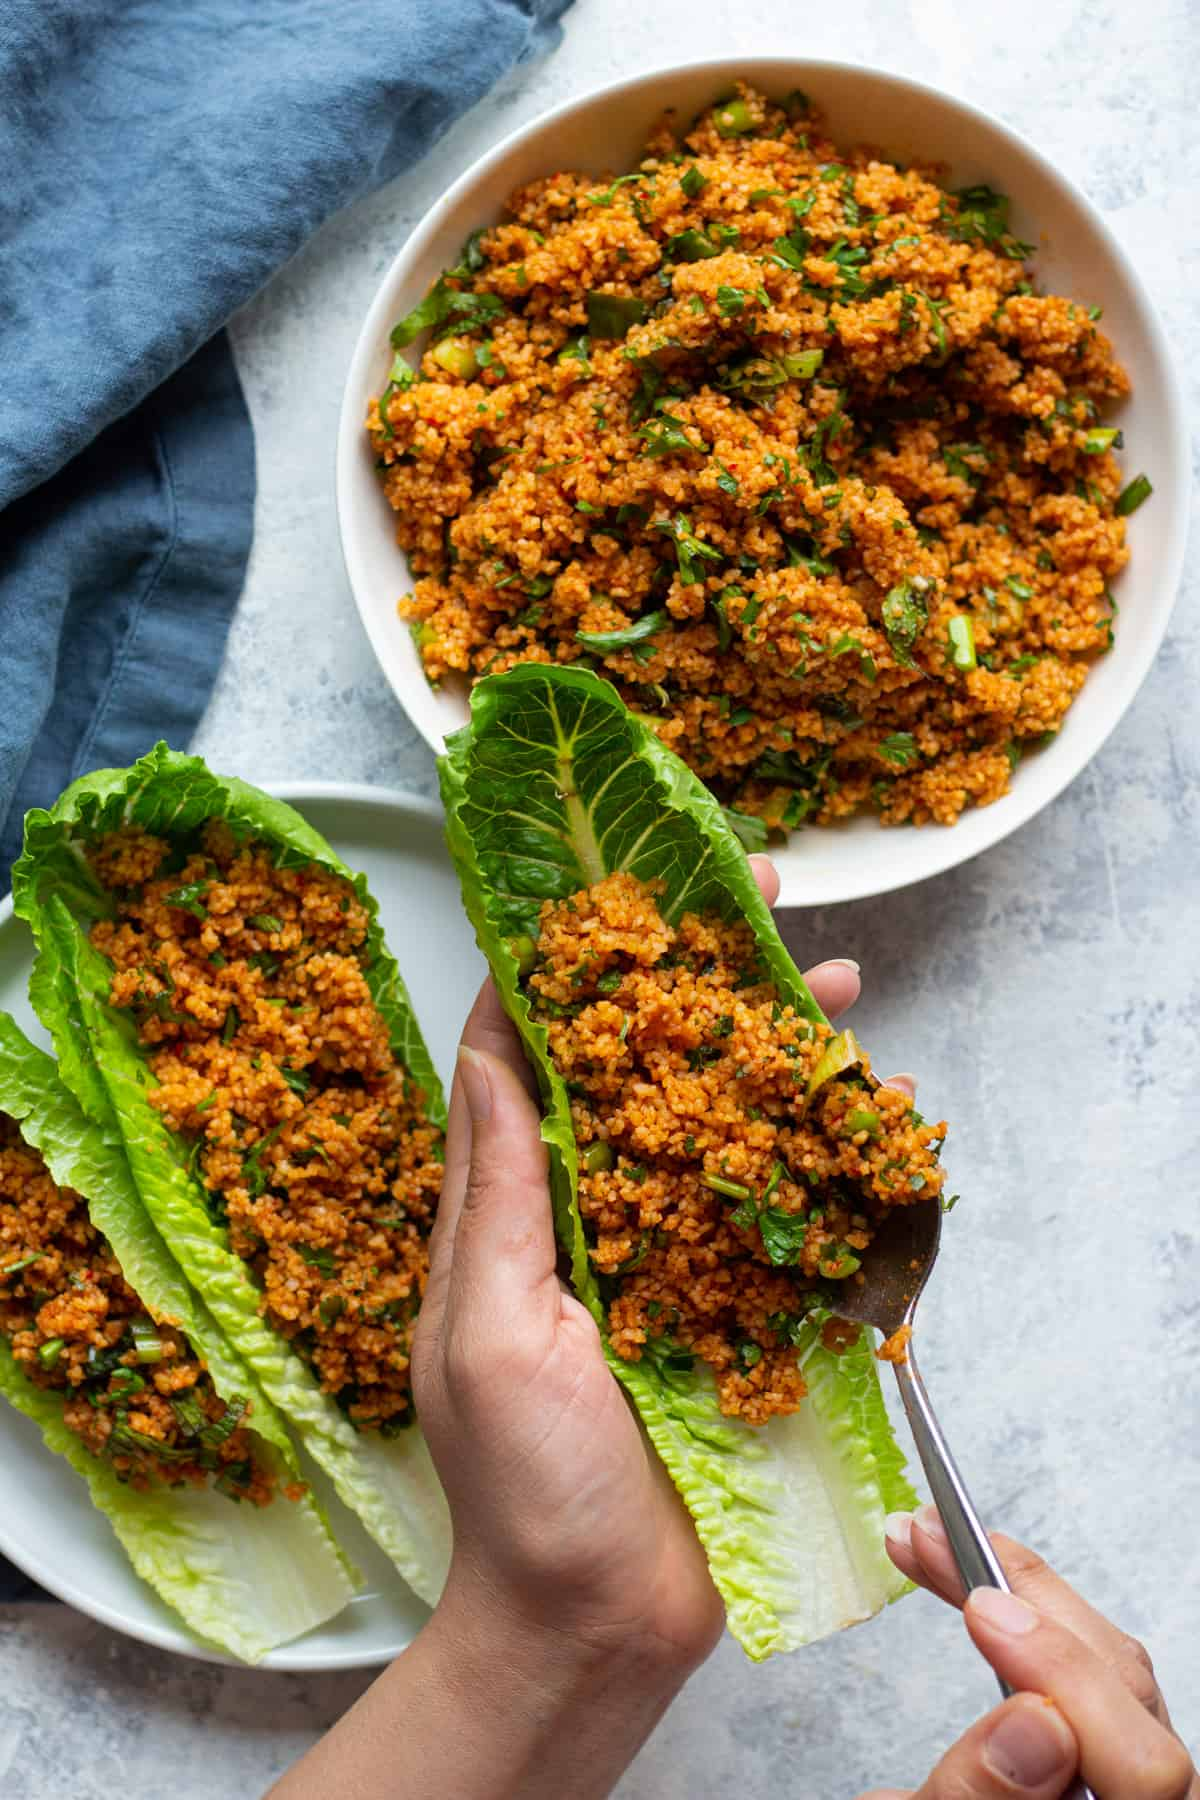 Homemade bulgur salad is healthy and can be served as a light lunch or appetizer.